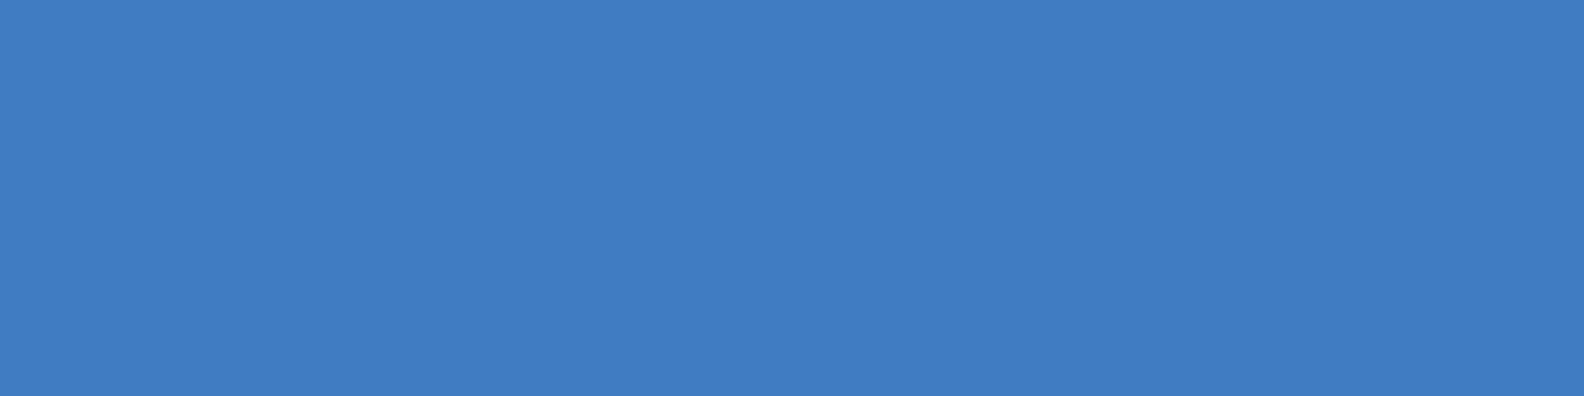 1584x396 Tufts Blue Solid Color Background